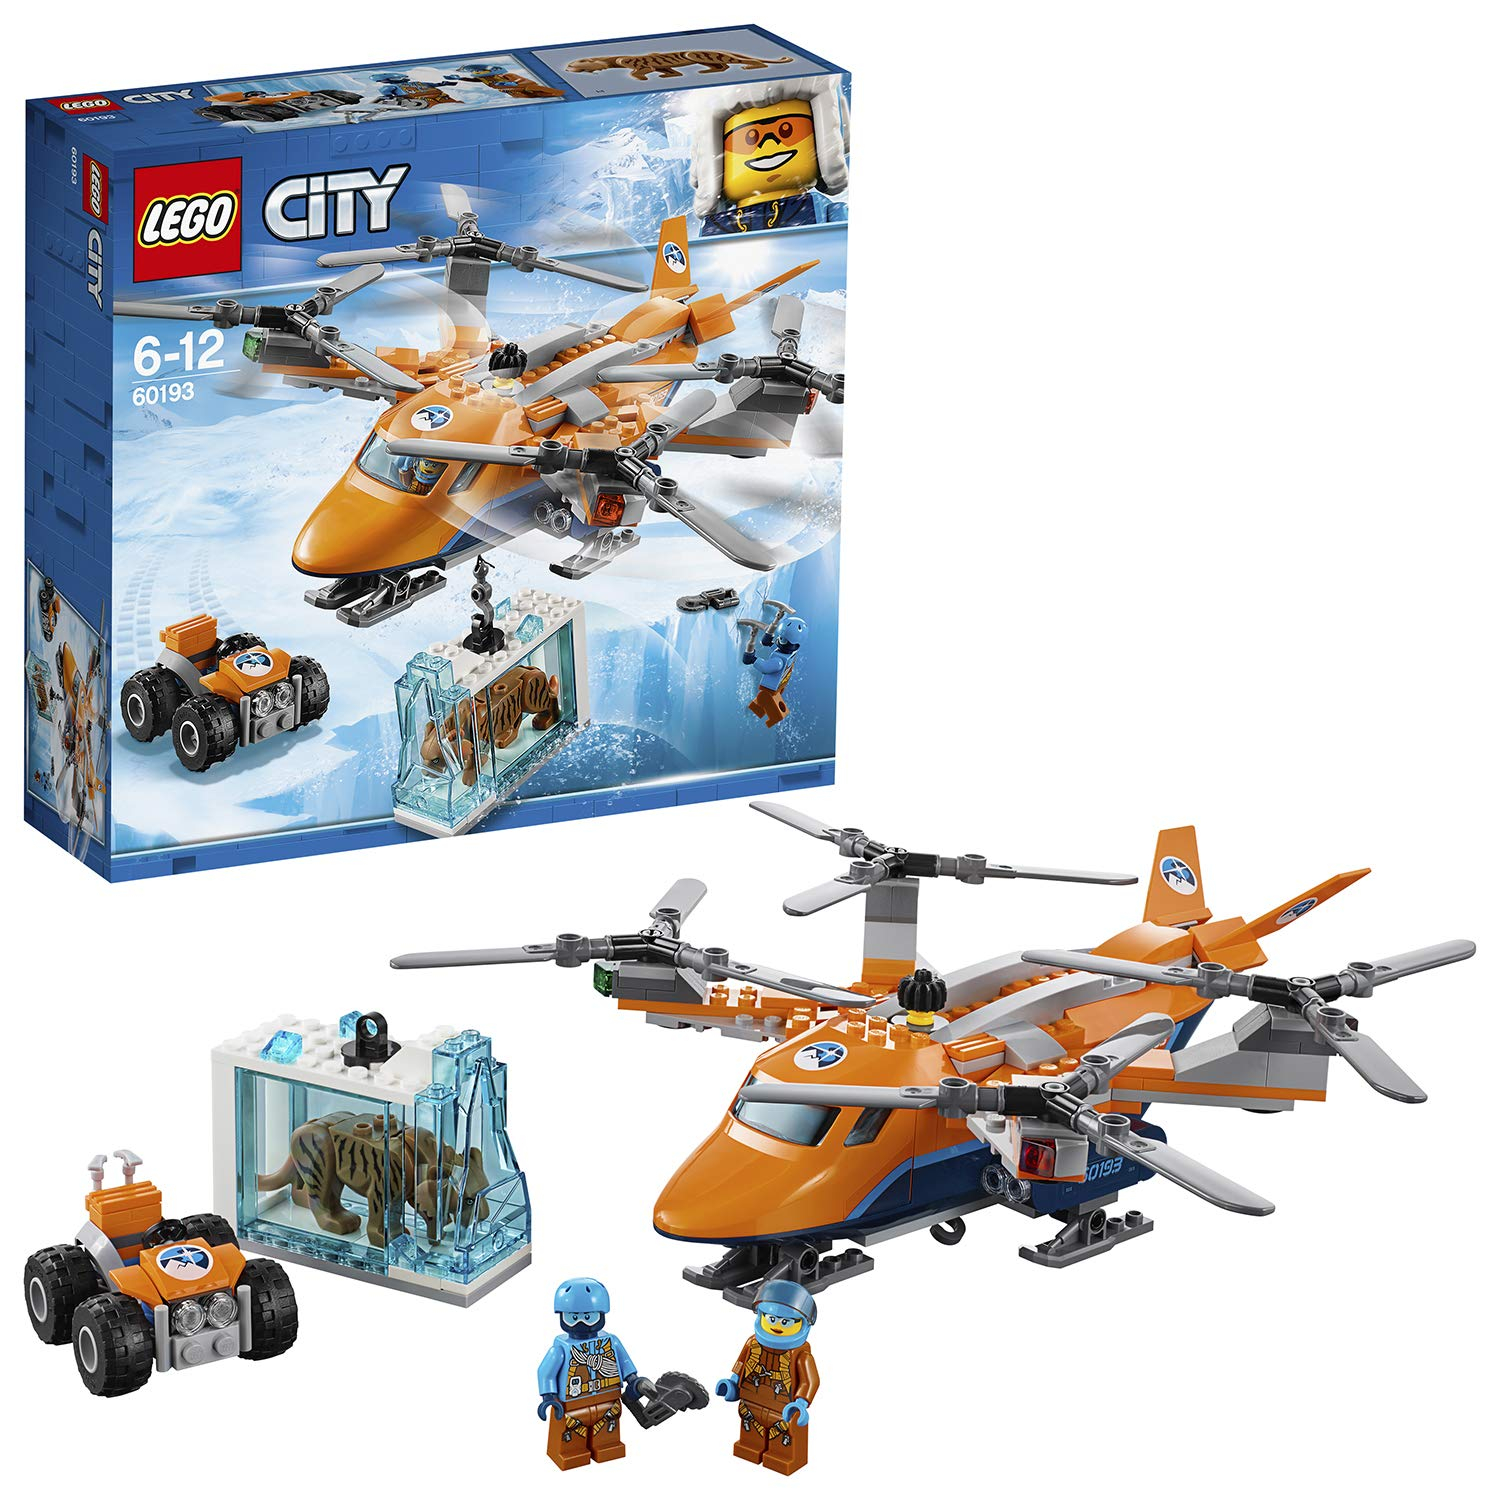 lego city arctic expedition arctic air transport building set with heavy cargo rescue helicopter atv tiger figure winter adventure toys for kids